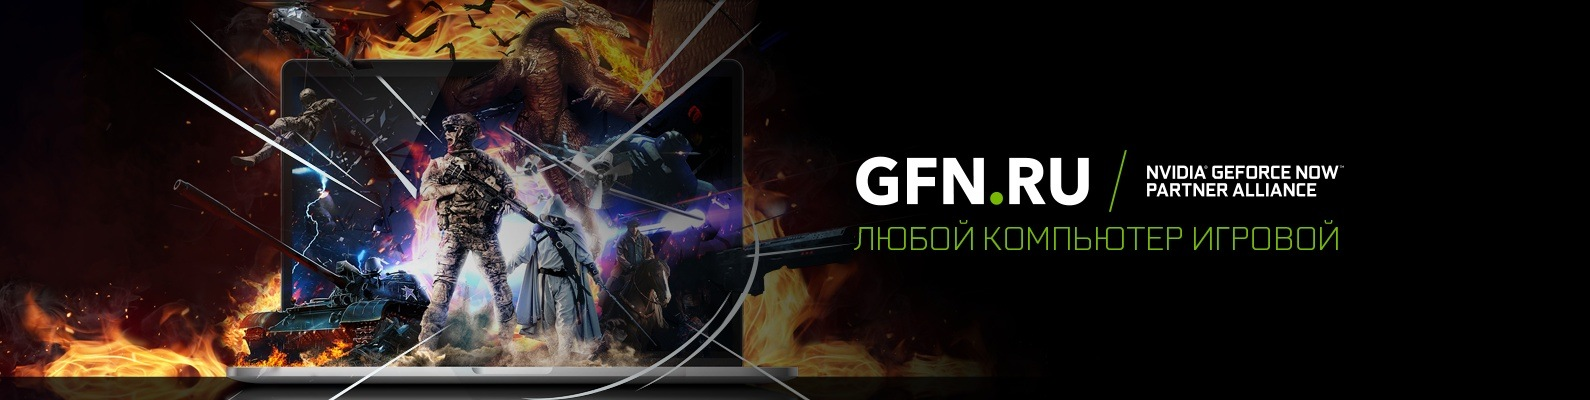 ✅🚀Unlimited GeForce NOW Premium💎Best Guarantee✅GFN.ru